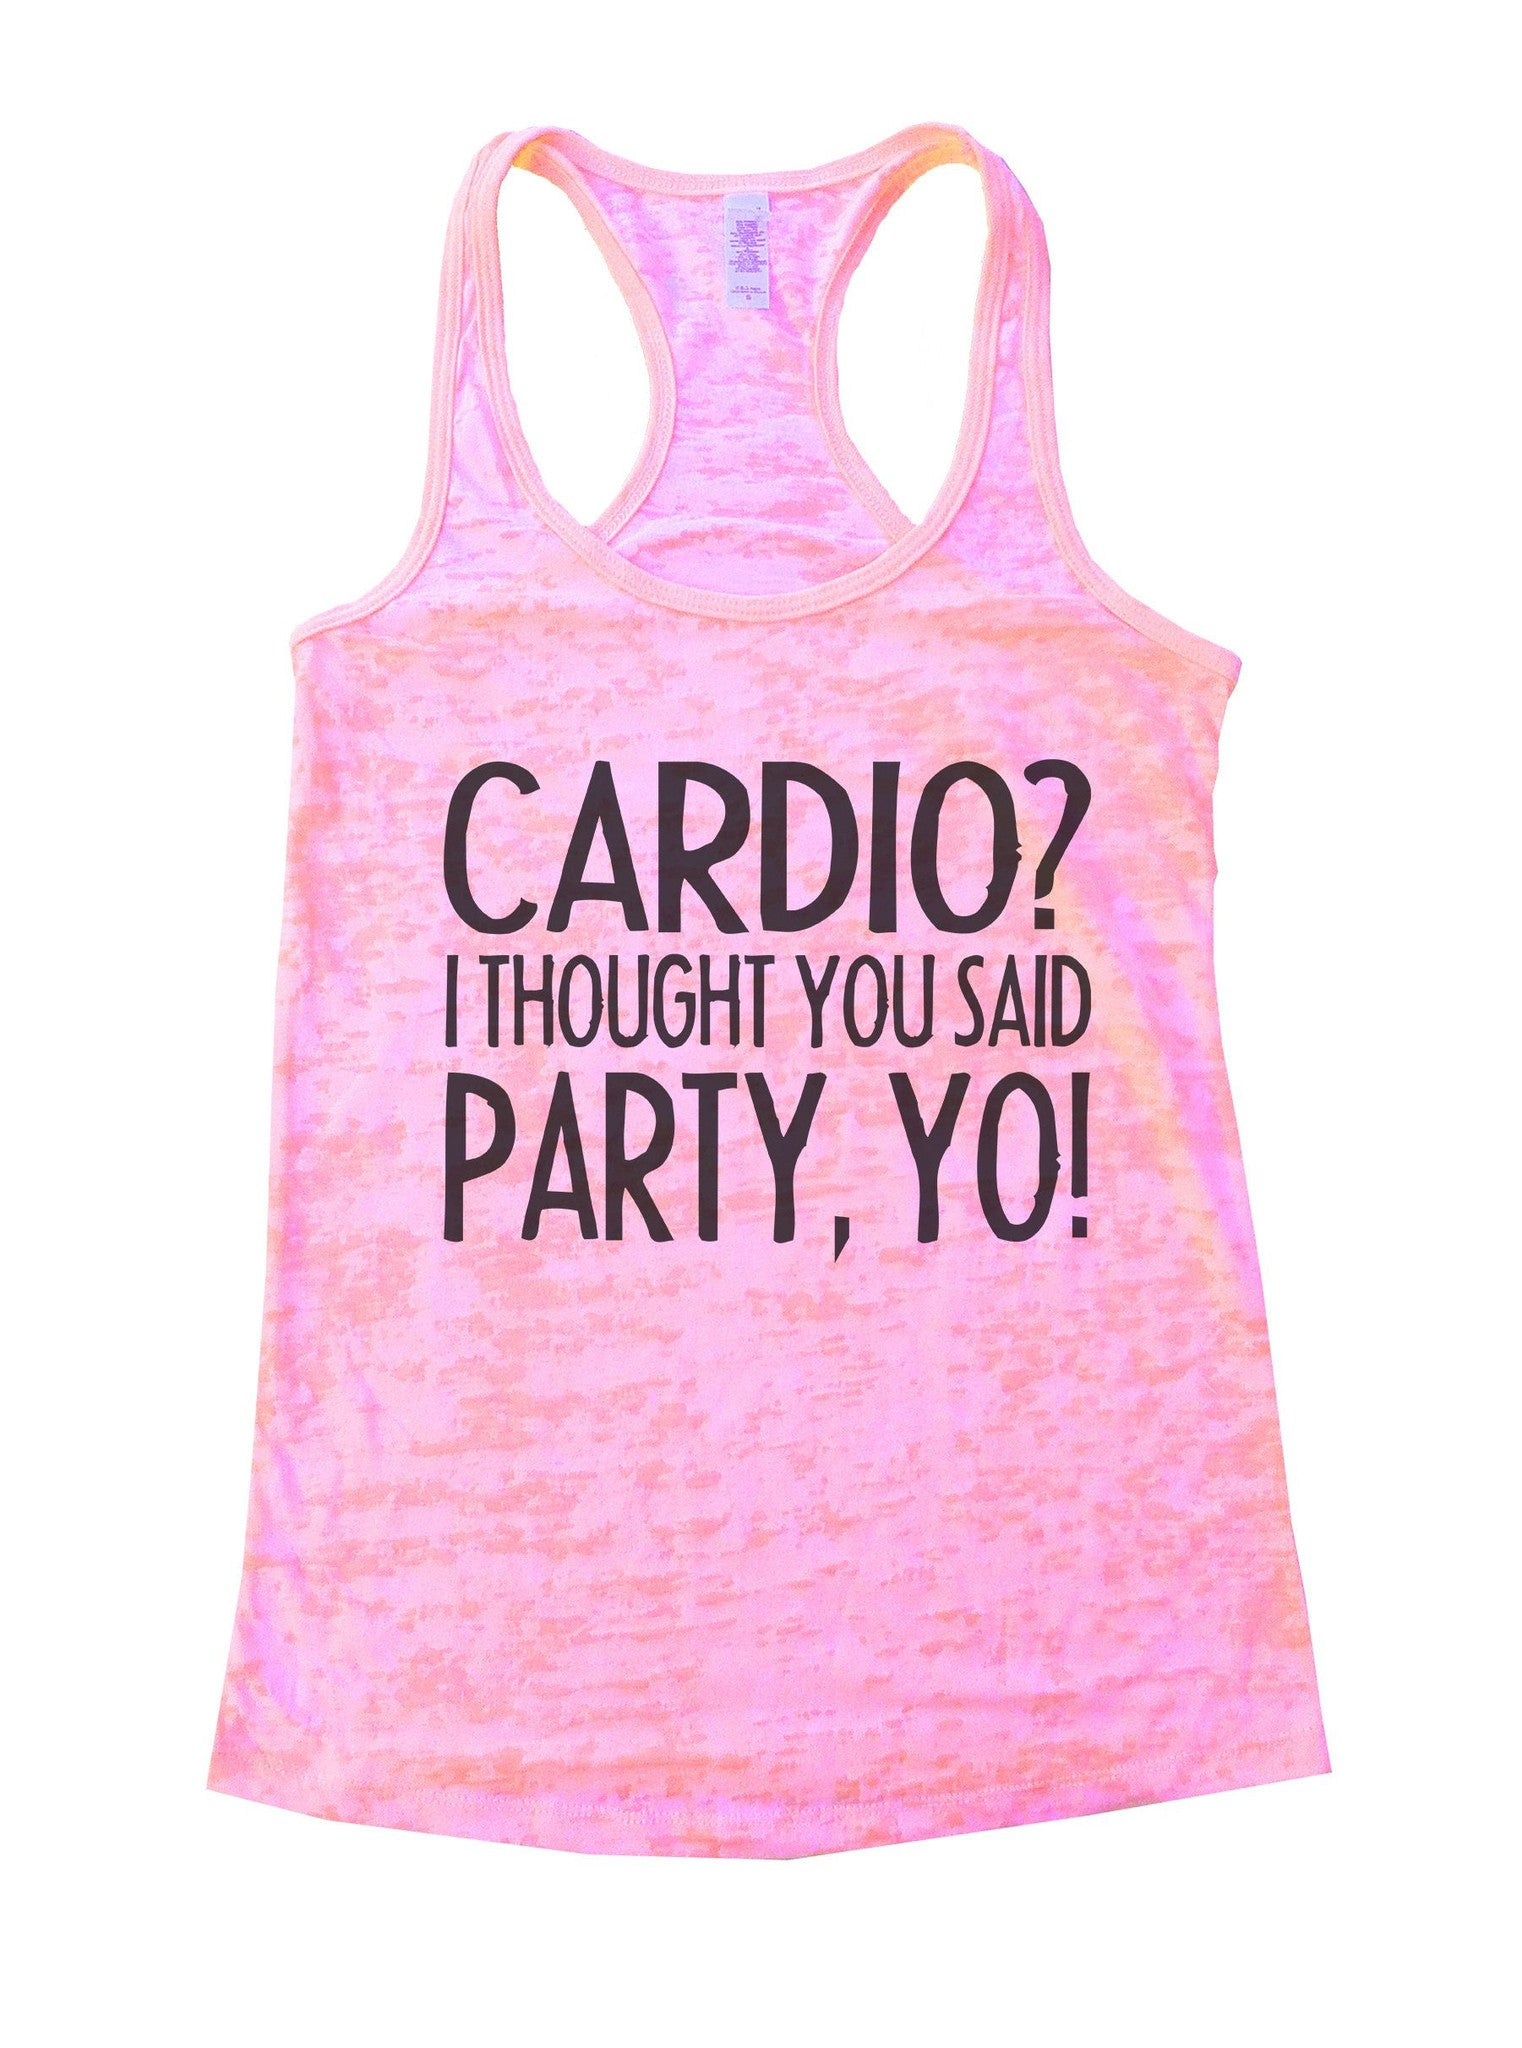 Cardio? I Thought You Said Party, Yo! Burnout Tank Top By BurnoutTankTops.com - 932 - Funny Shirts Tank Tops Burnouts and Triblends  - 2